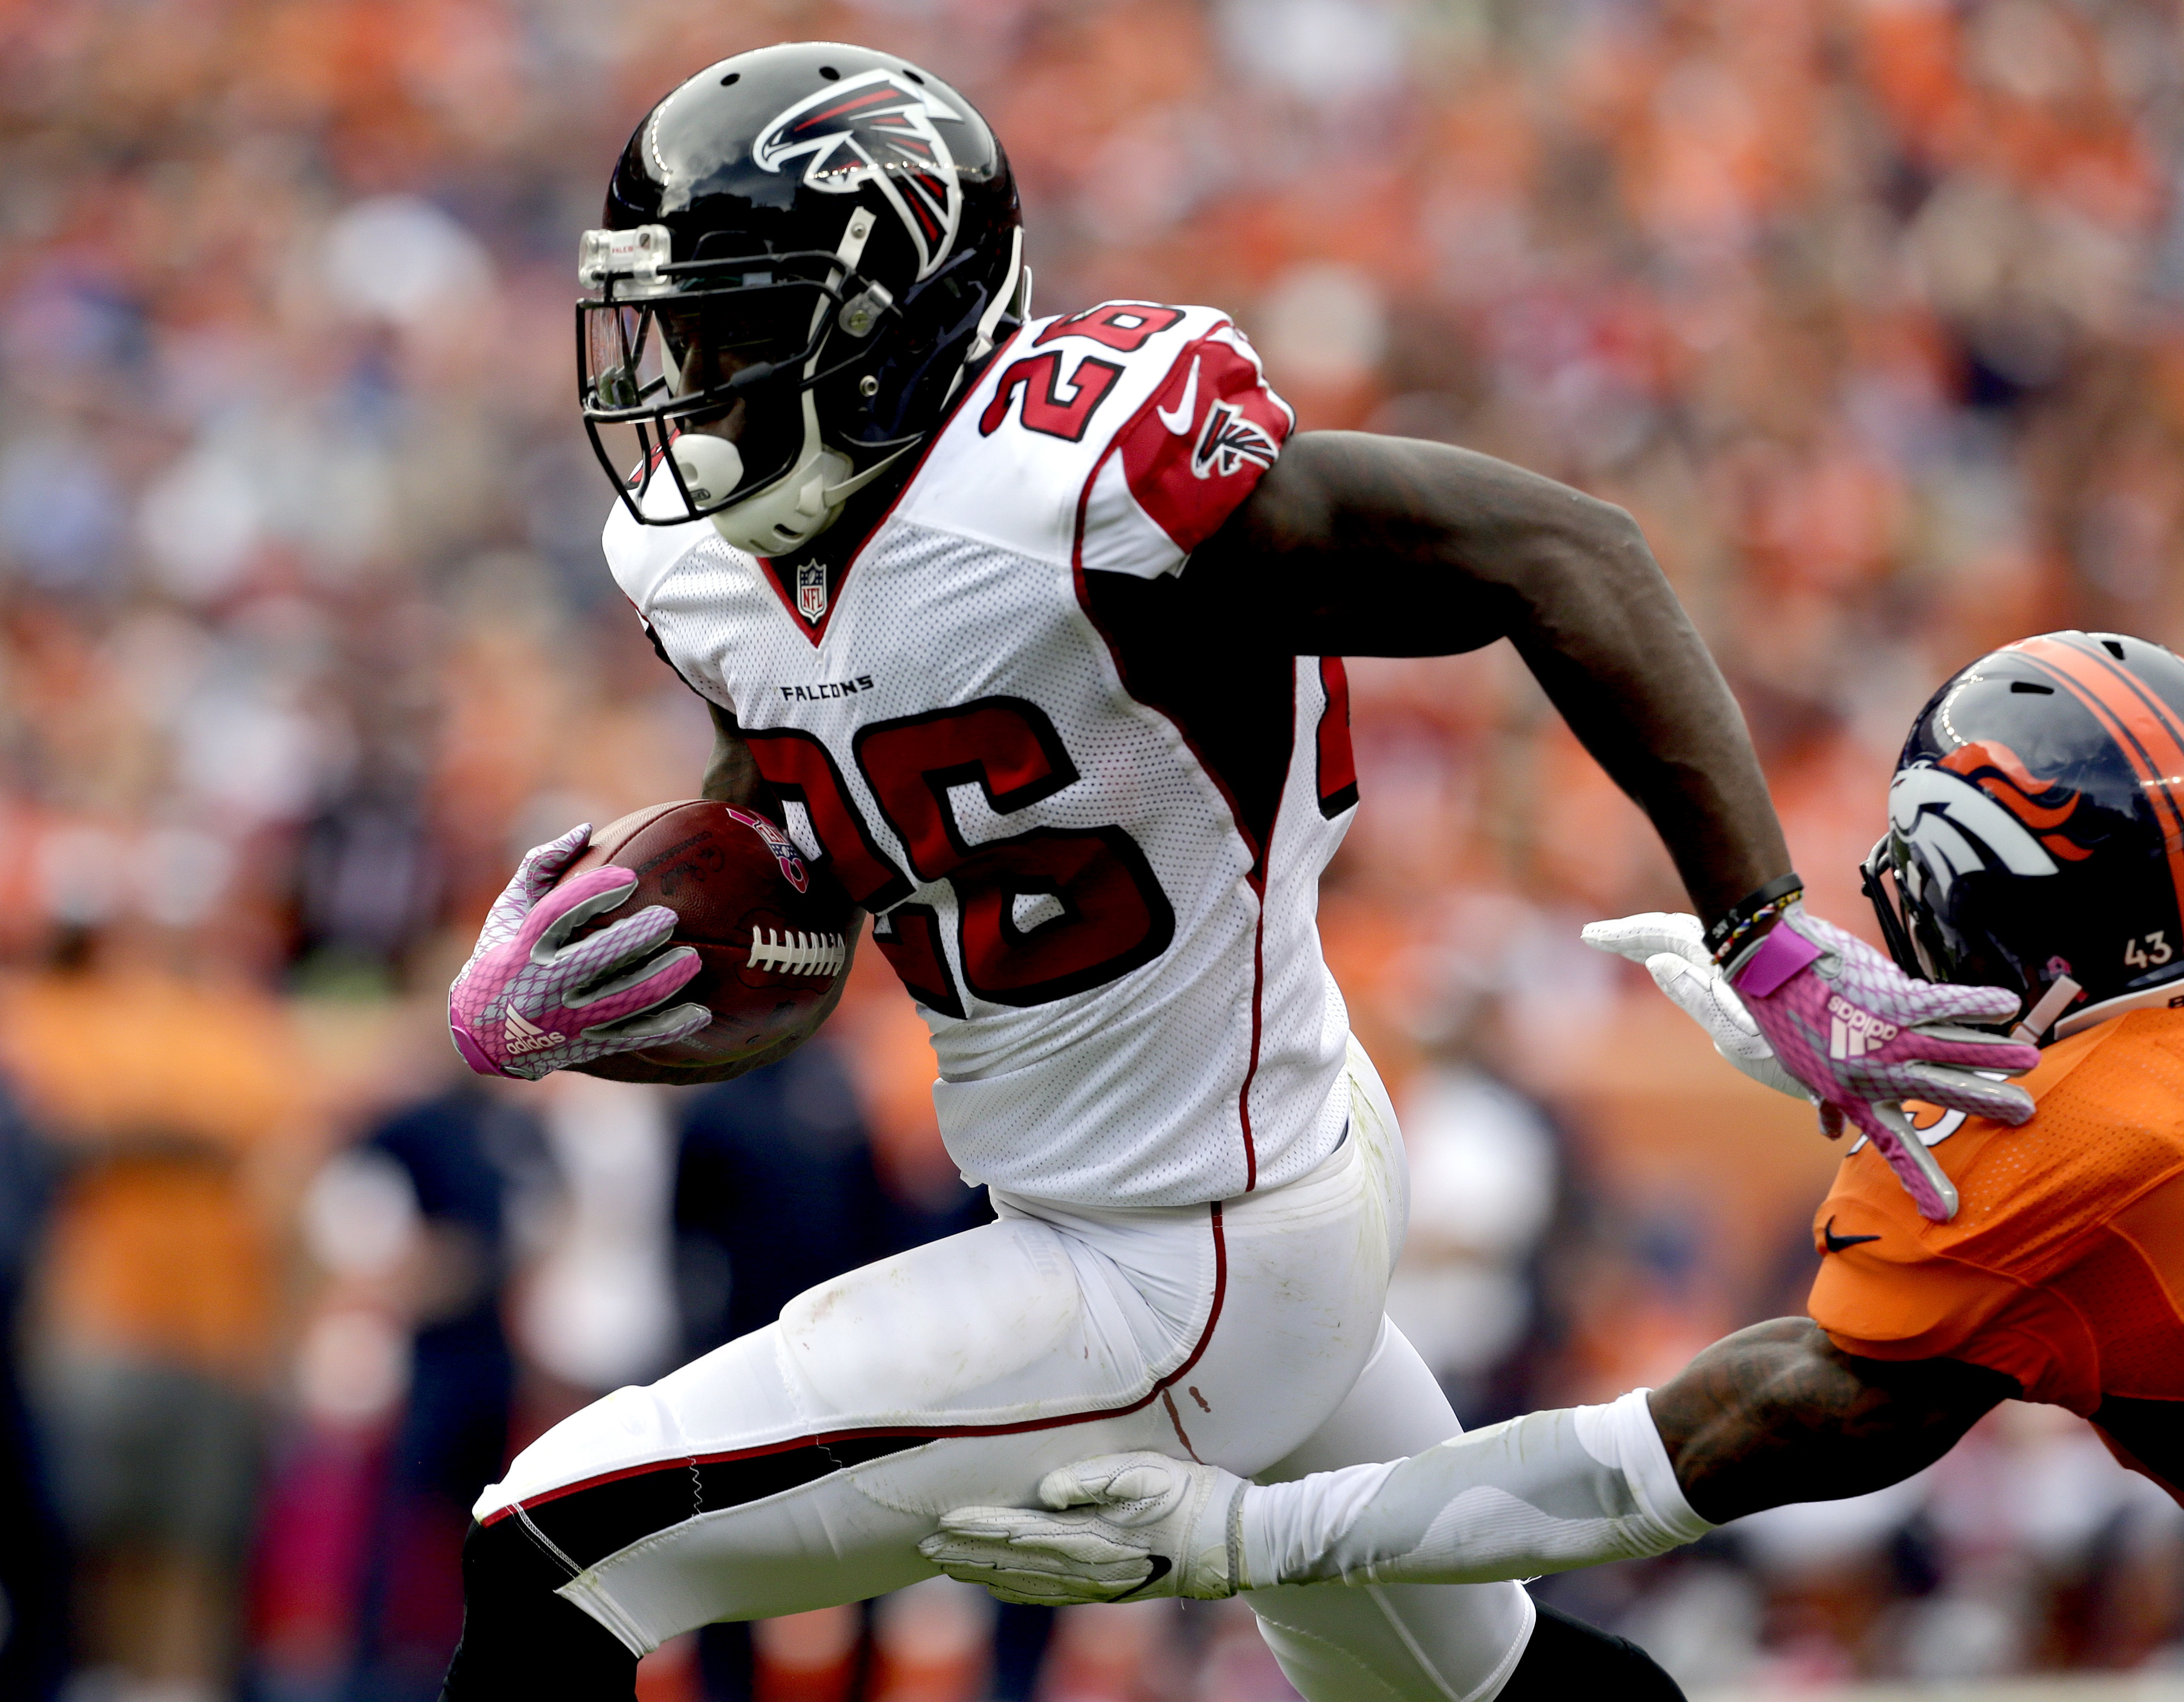 FILE - In this Oct. 9, 2016, file photo, Atlanta Falcons running back Tevin Coleman (26) runs for a touchdown against the Denver Broncos during the second half of an NFL football game, in Denver. After missing three games with a hamstring injury, Coleman